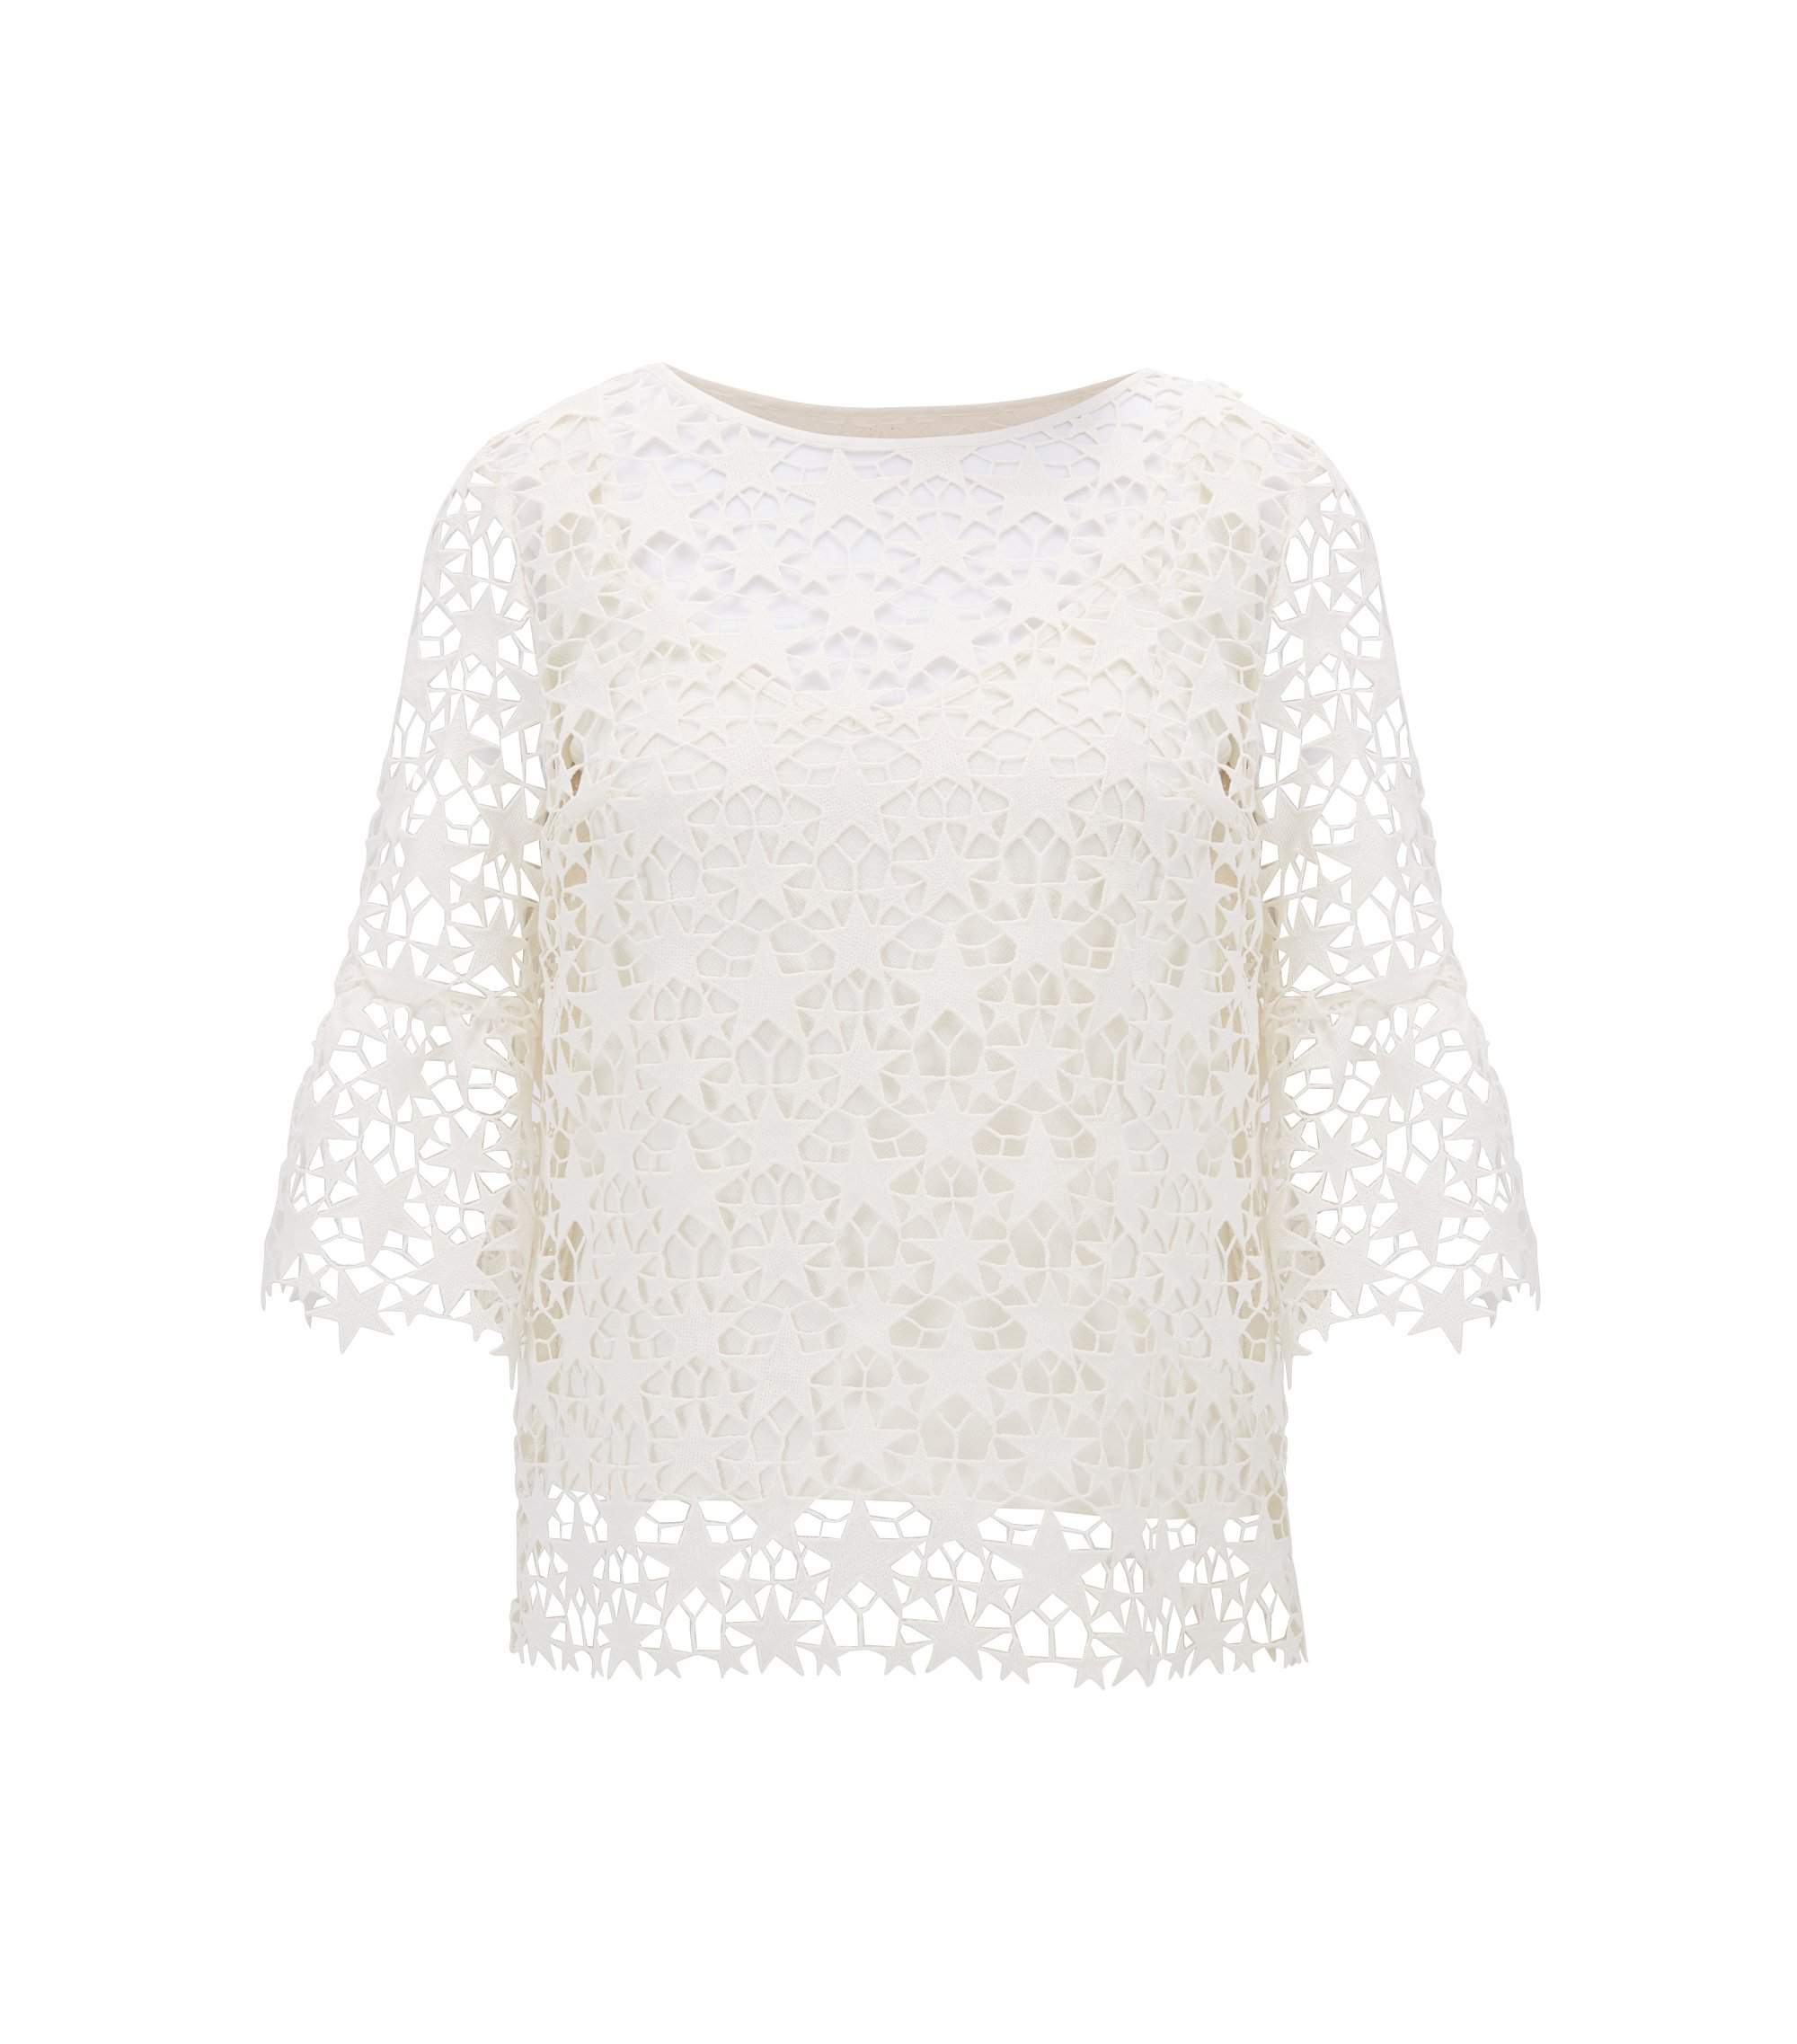 Star lace layered top with bell sleeves, Natural